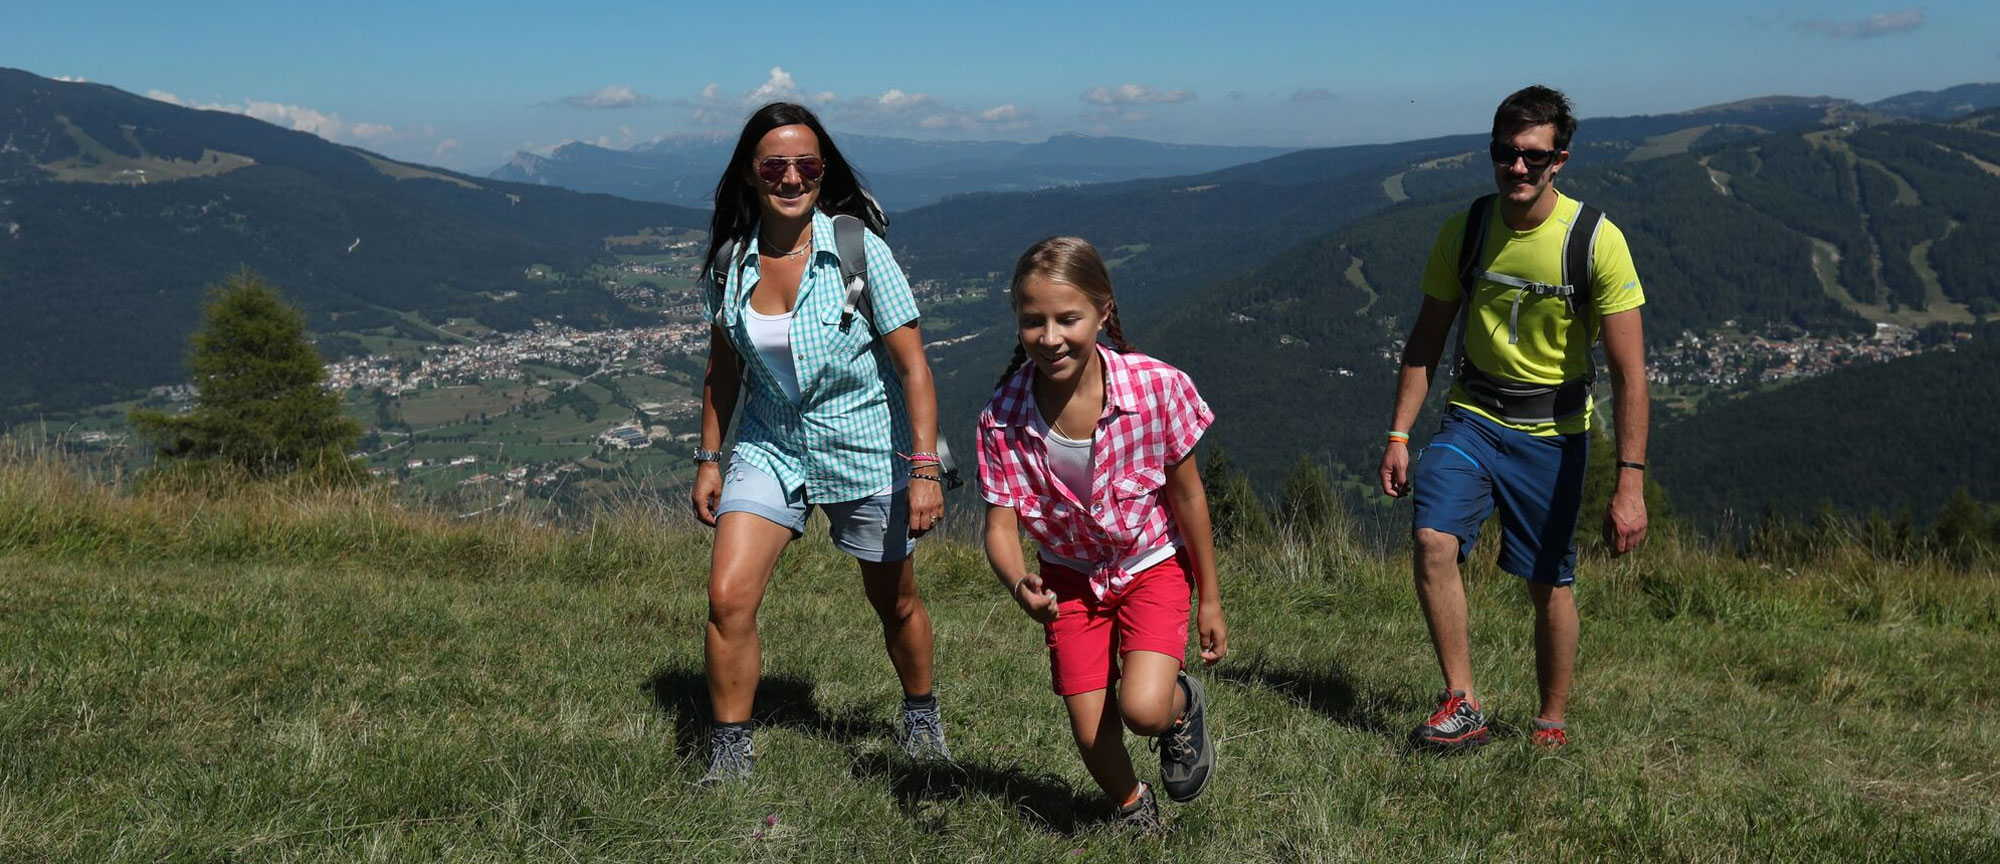 Excursions and outdoor sports with the family: everything you can do in an area of Lavarone, Folgaria and Luserna.  Hotel Lavarone : a family friendly hotel